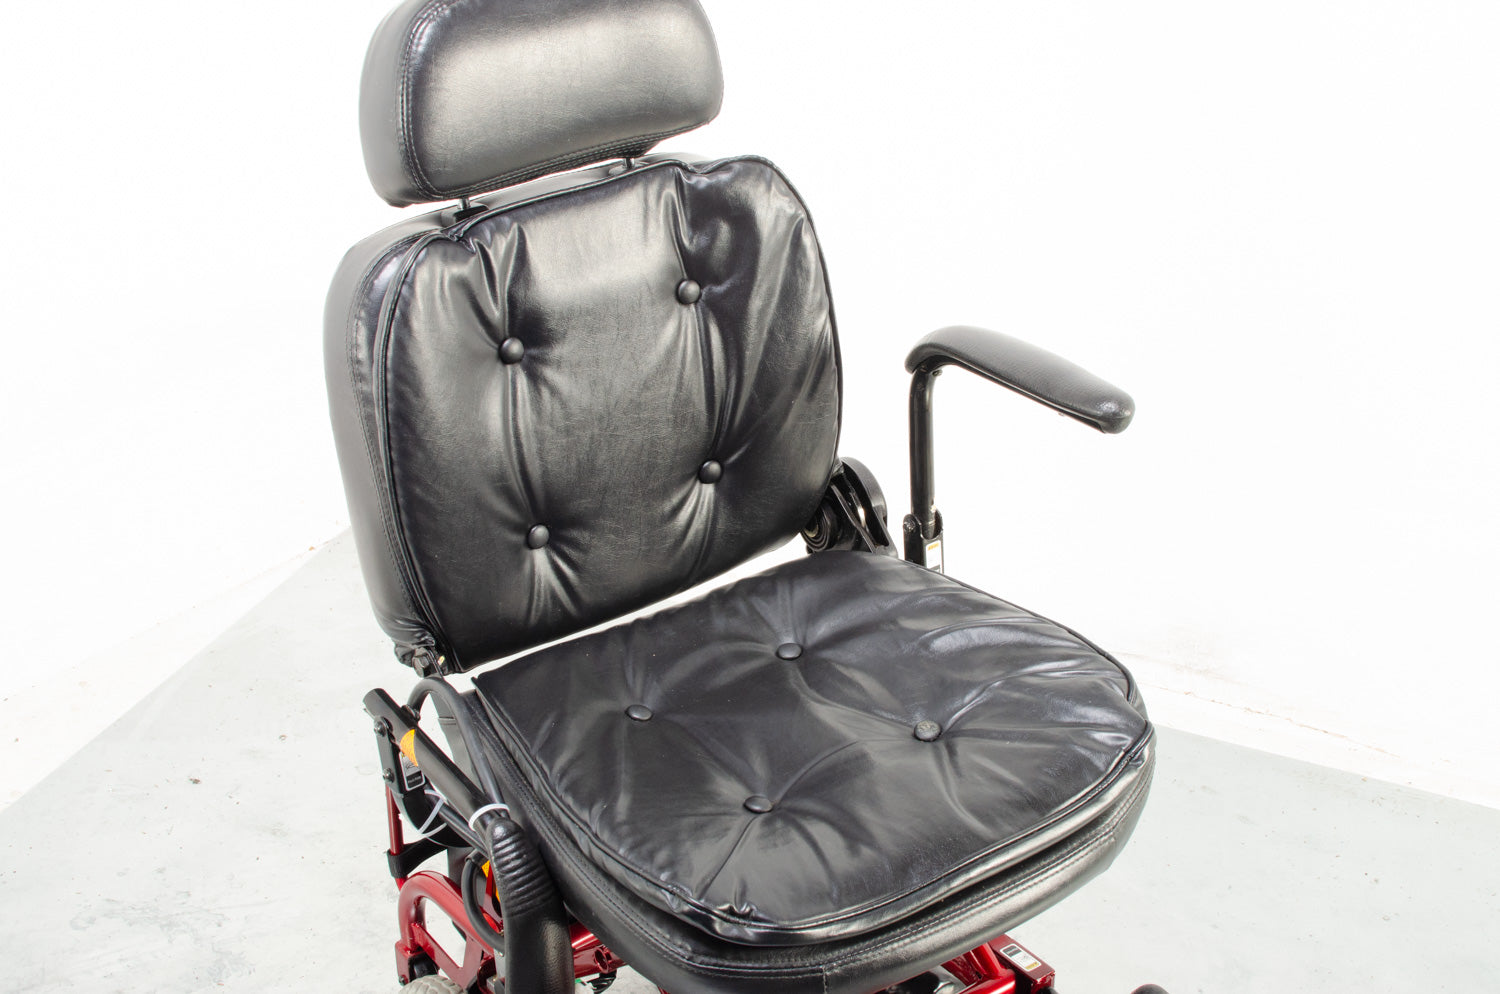 Rascal Vienna Used Electric Mobility Wheelchair Powerchair Transportable Indoor